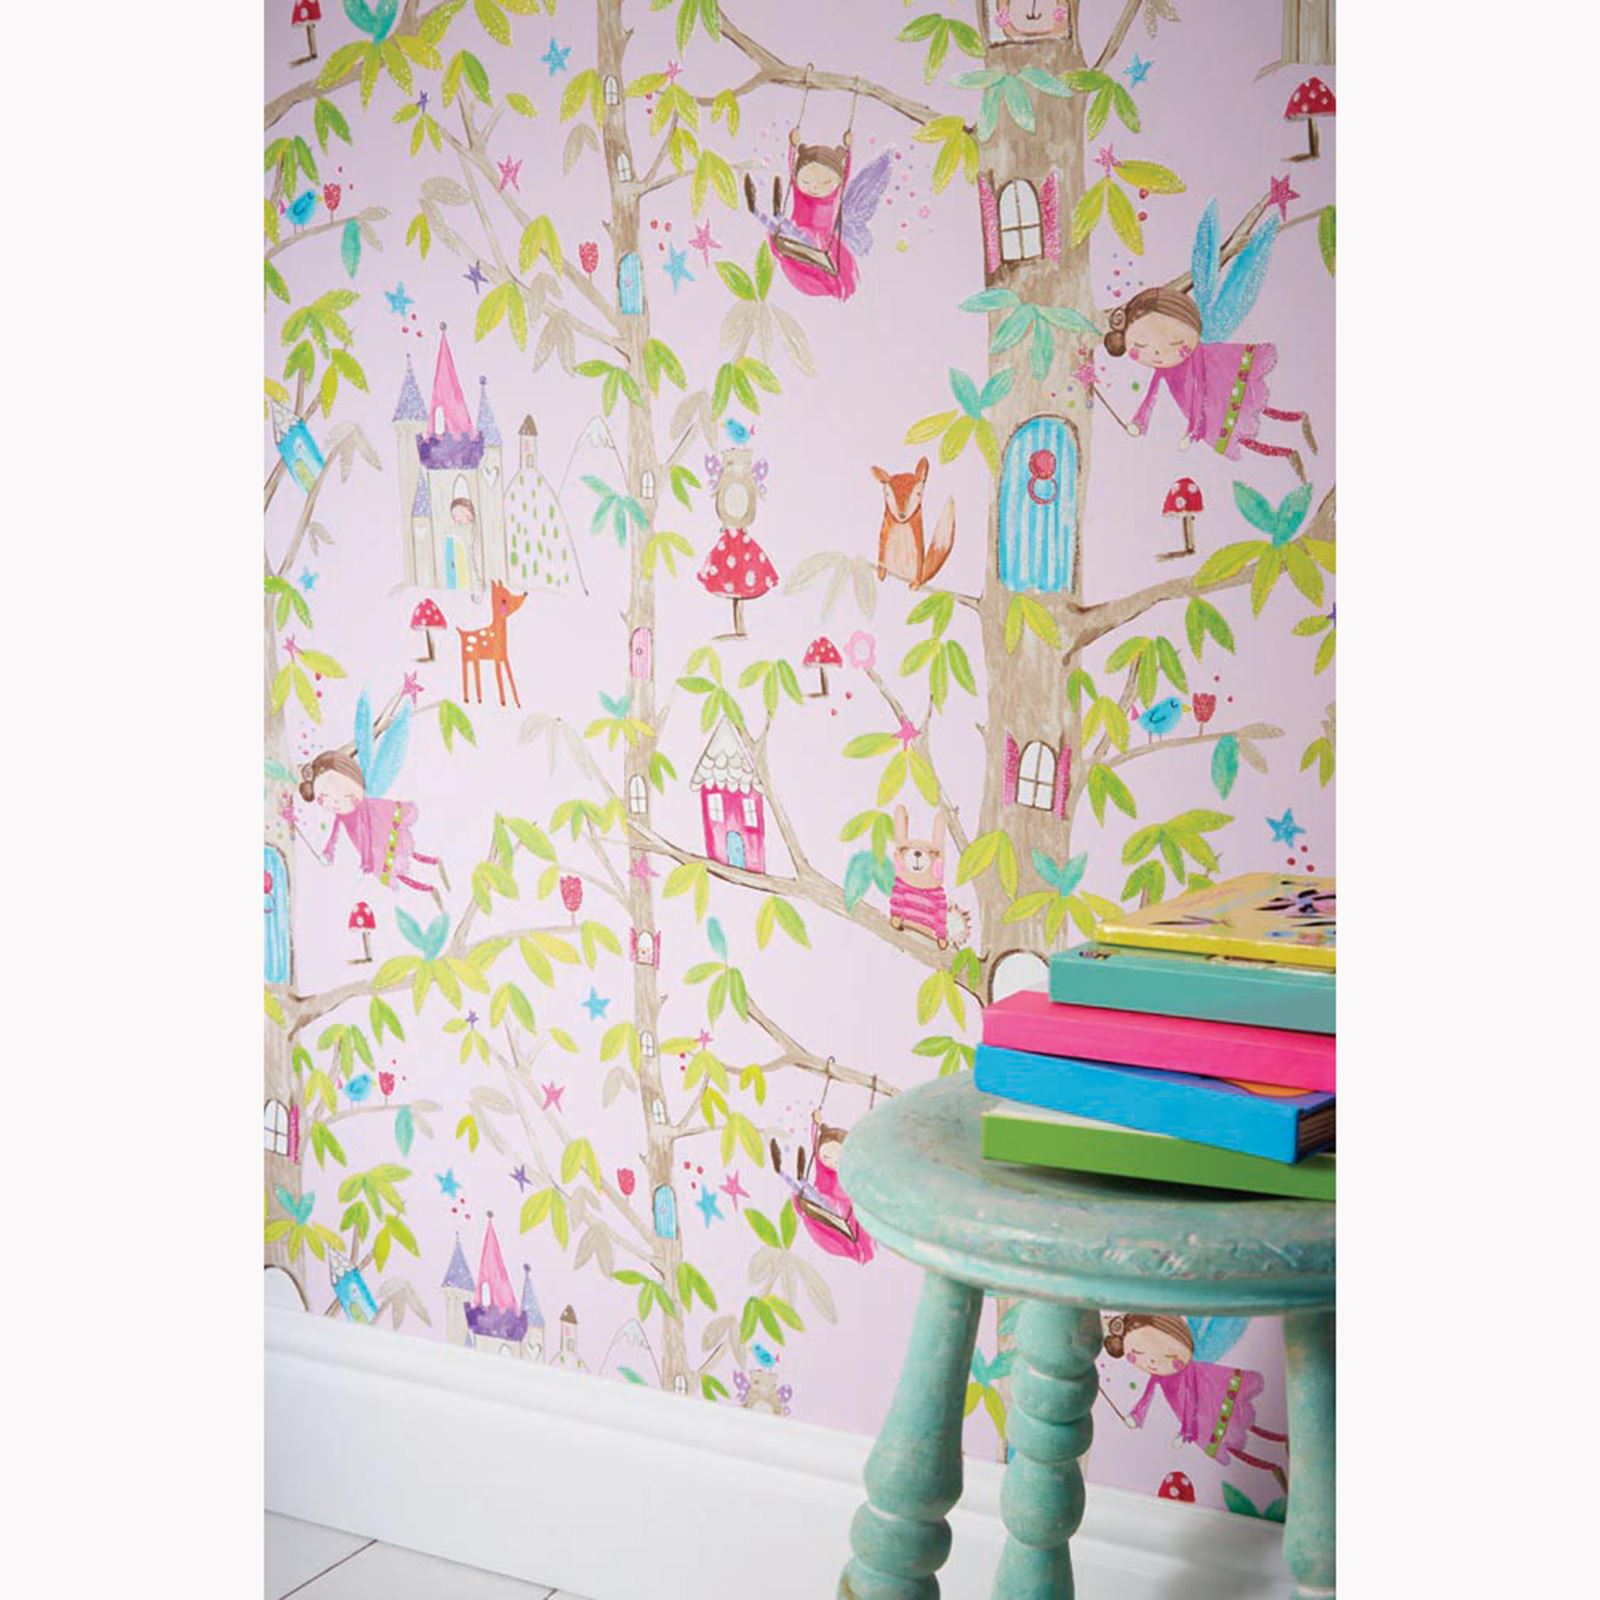 Superior ARTHOUSE GLITTER DETAIL KIDS GIRLS BEDROOM WALLPAPER FEATURE